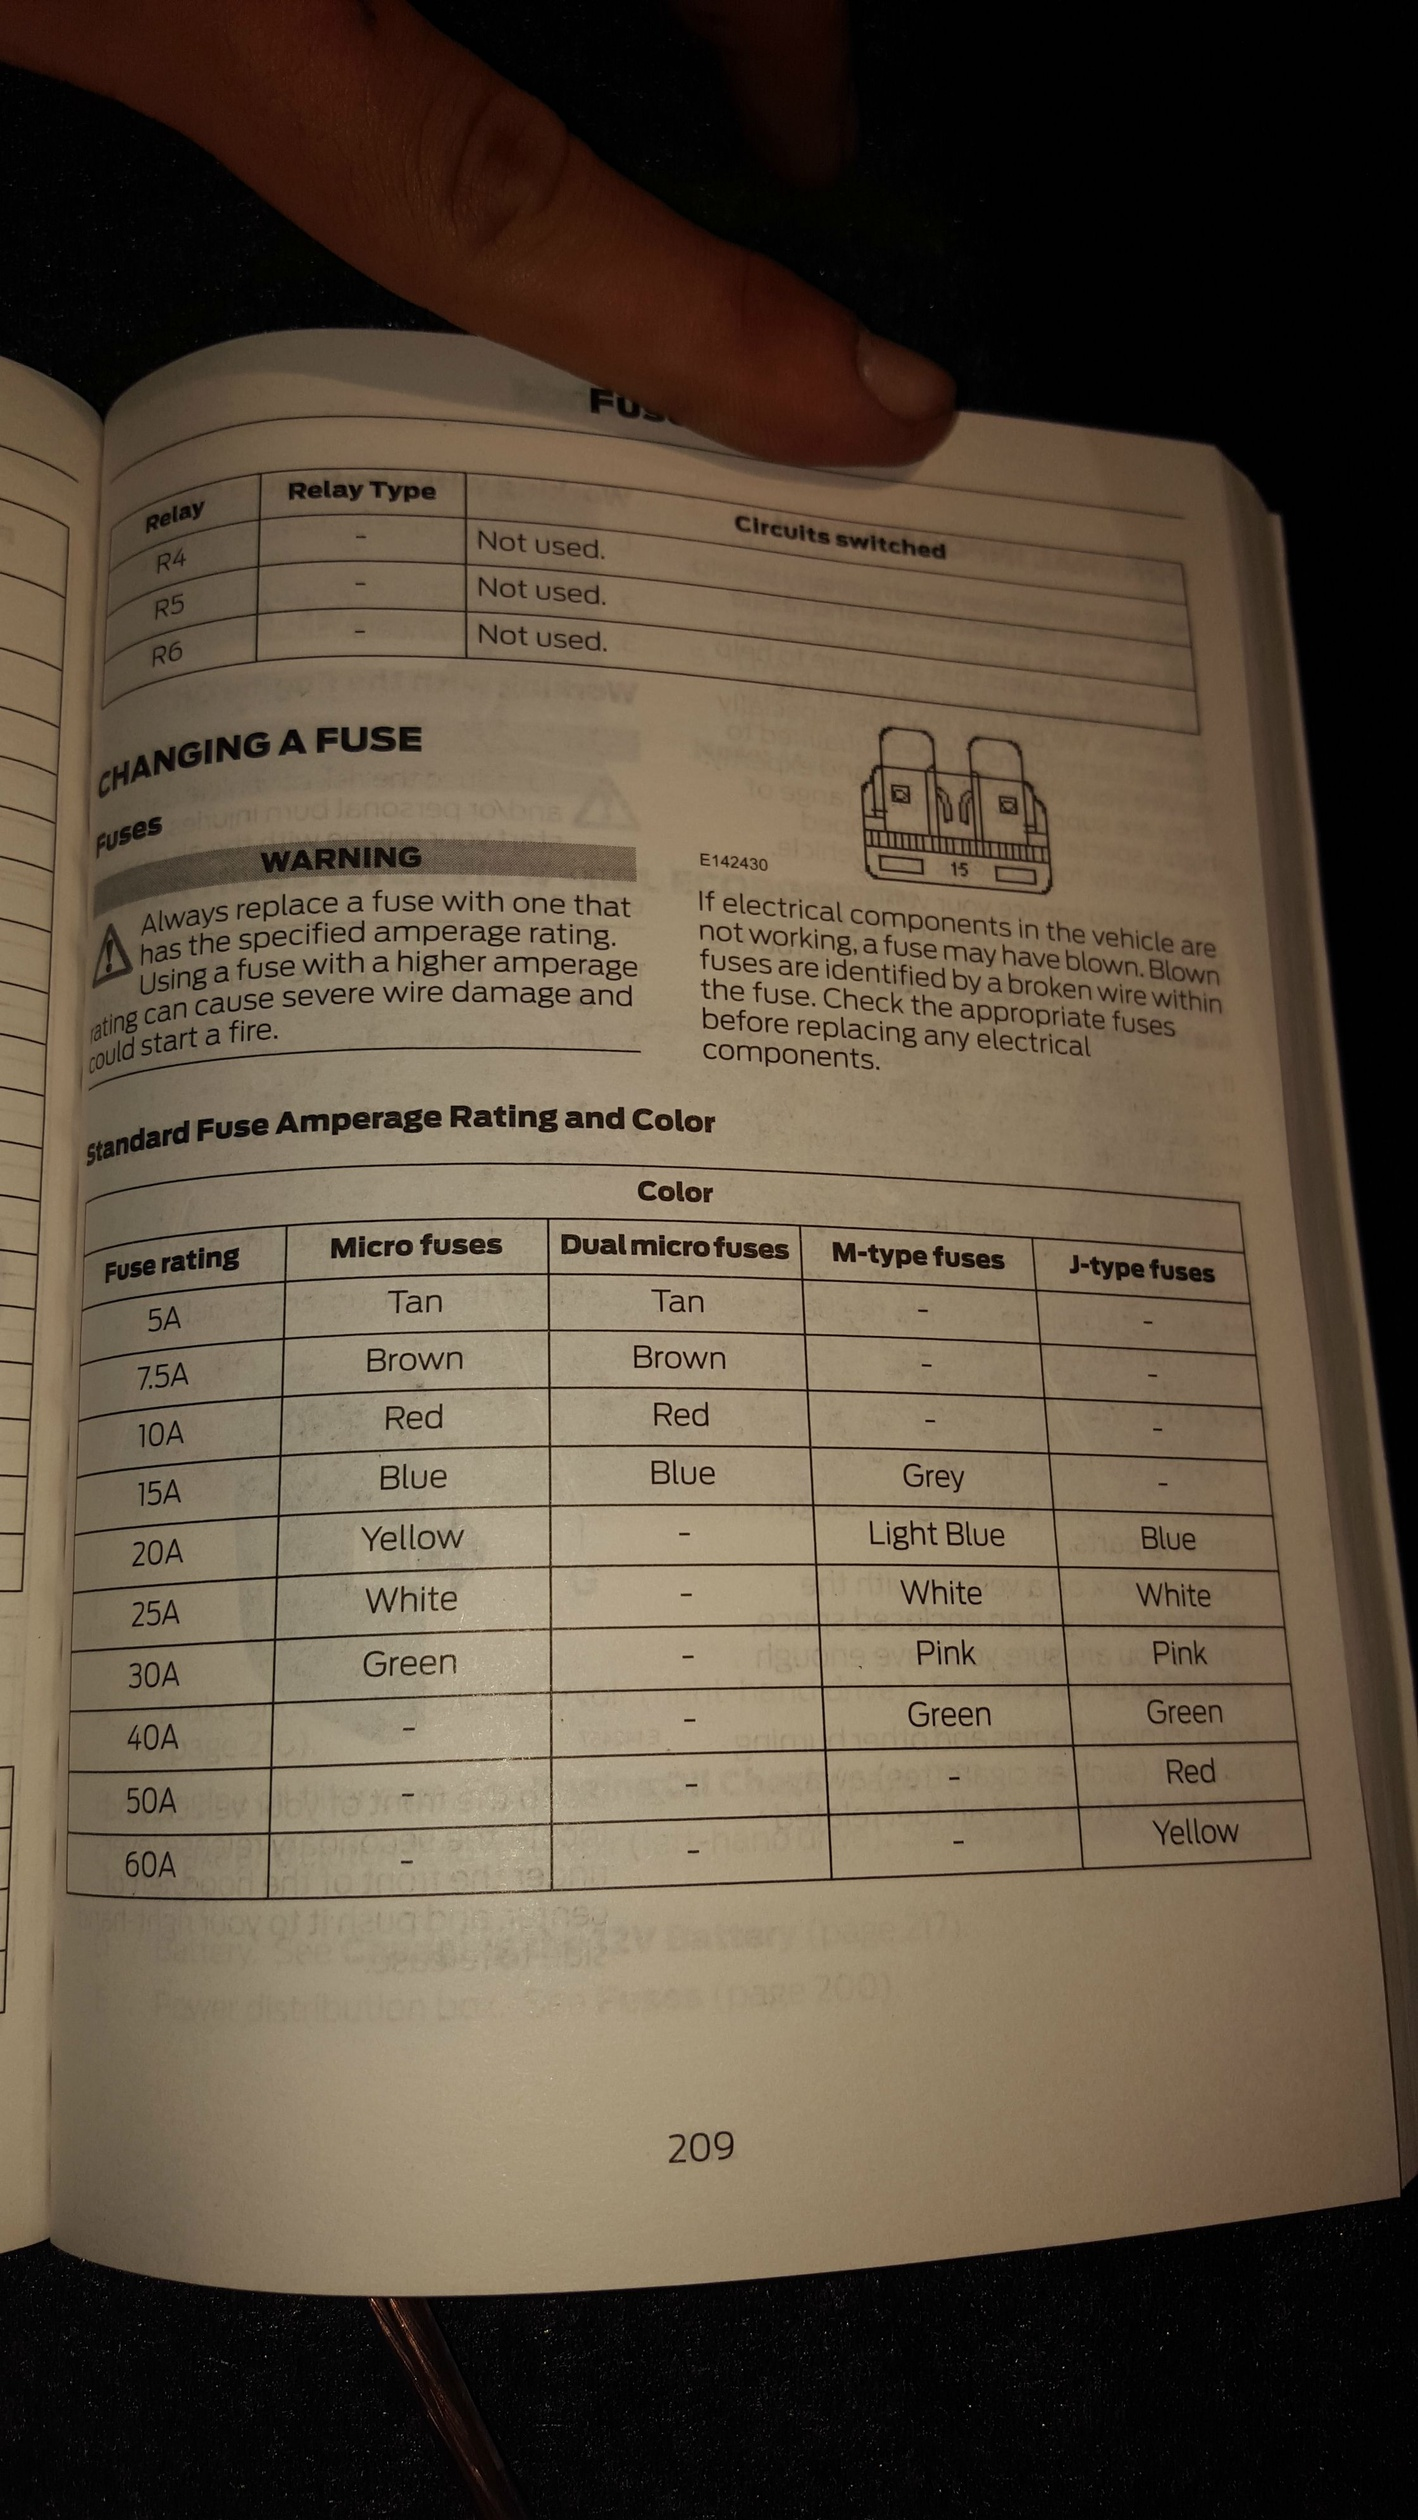 2002 ford focus headlight fuse diagram can't find relay or fuses for 2013 ford focus - ford focus ... #15